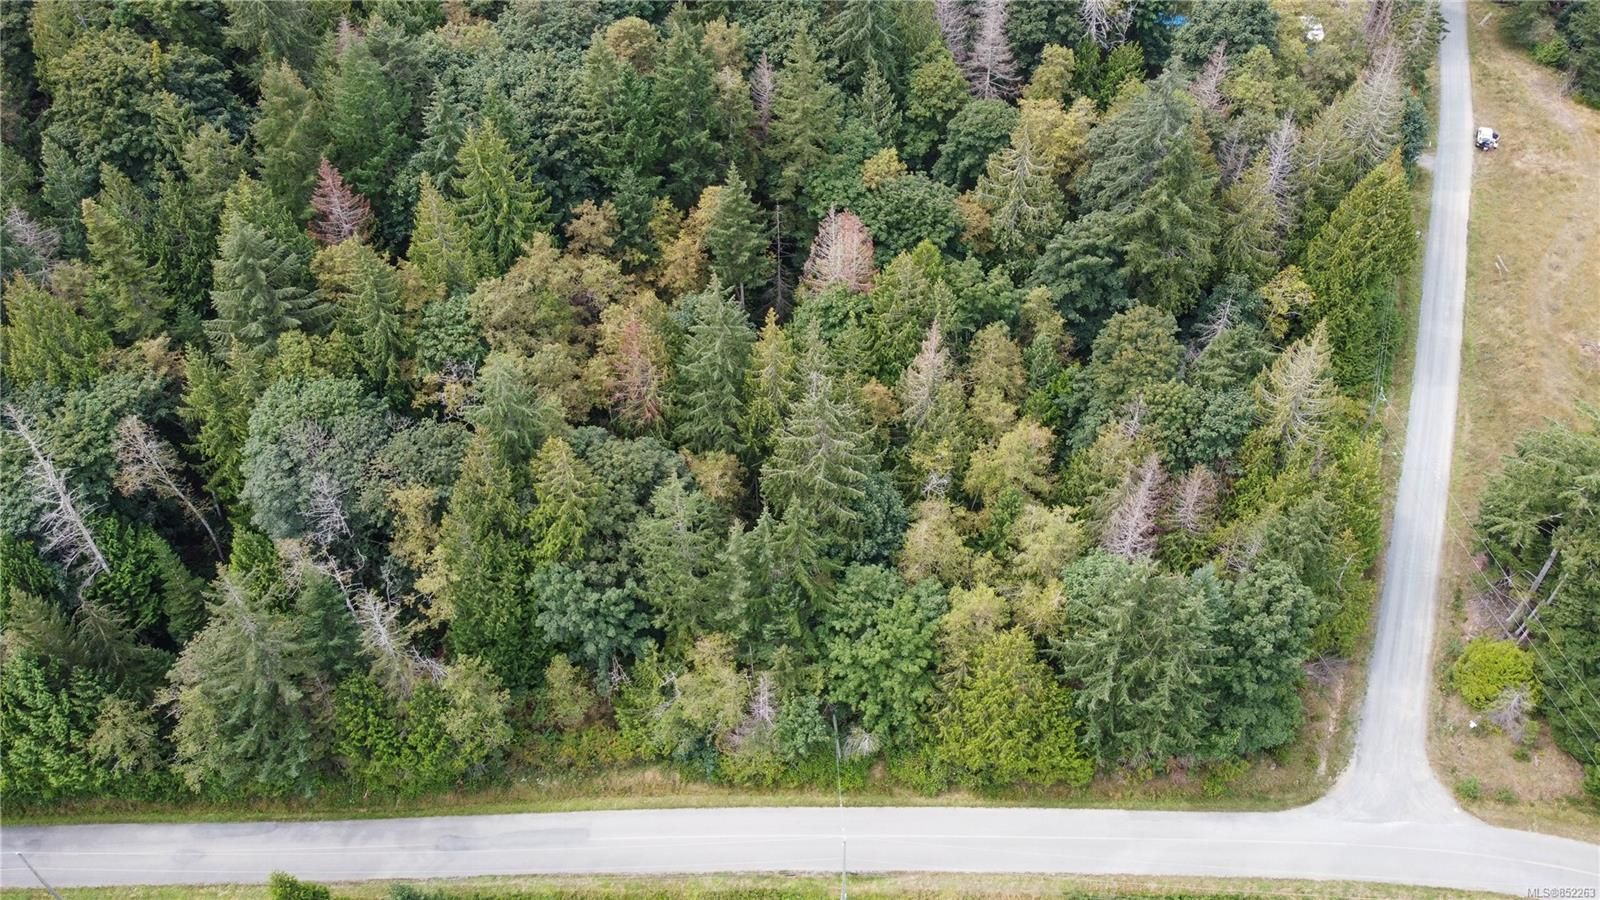 Main Photo: 356 Mill Rd in : Isl Thetis Island Land for sale (Islands)  : MLS®# 852263